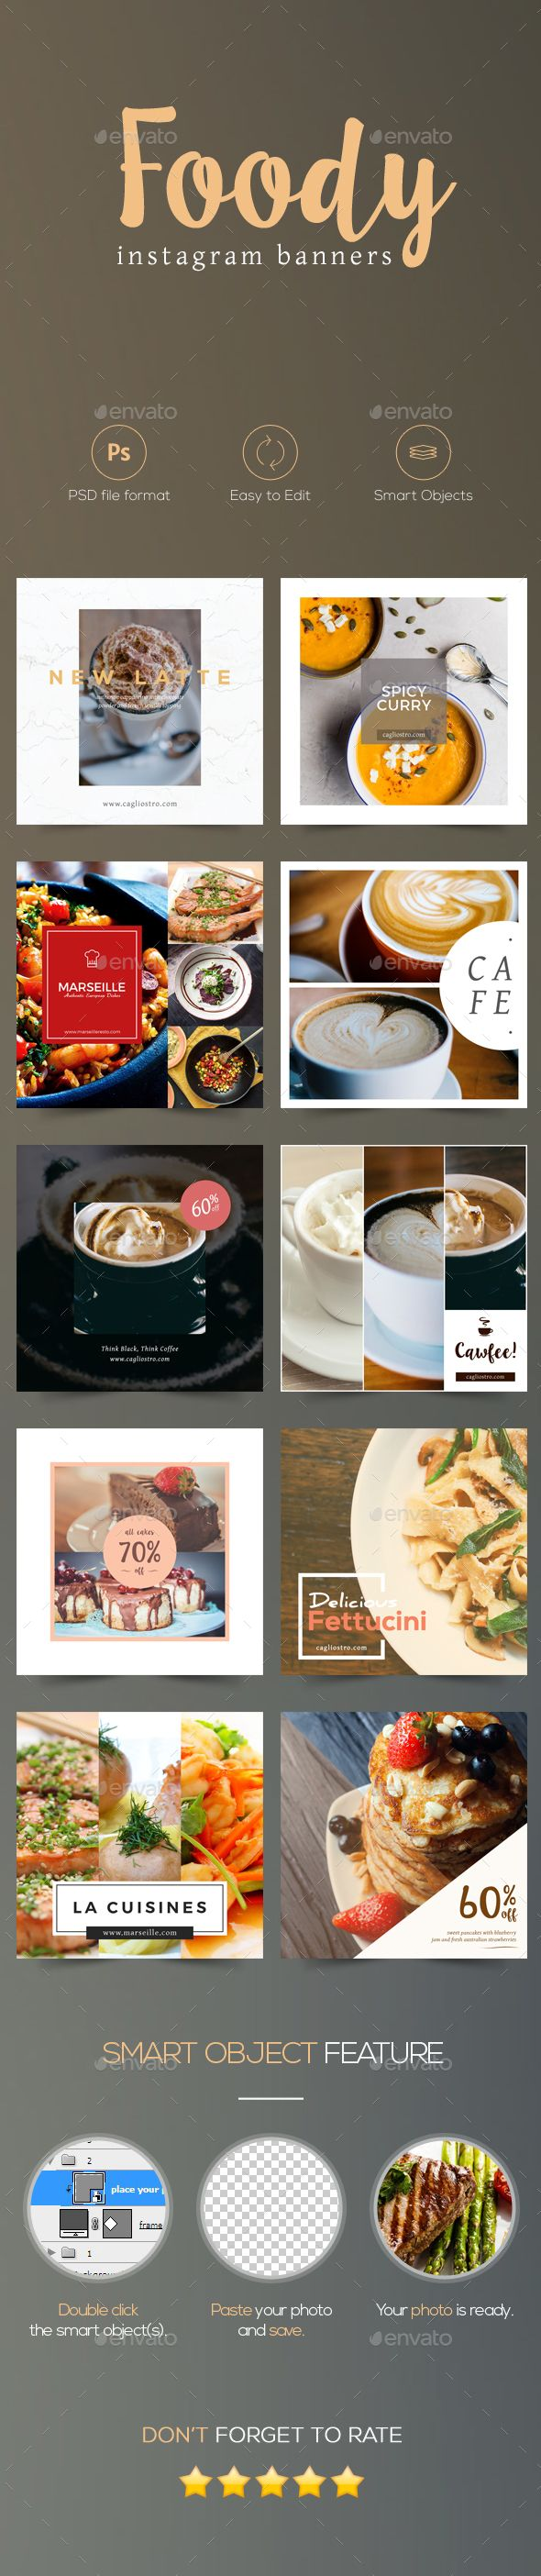 Foody - Cafe and Restaurant Instagram Banners #ads